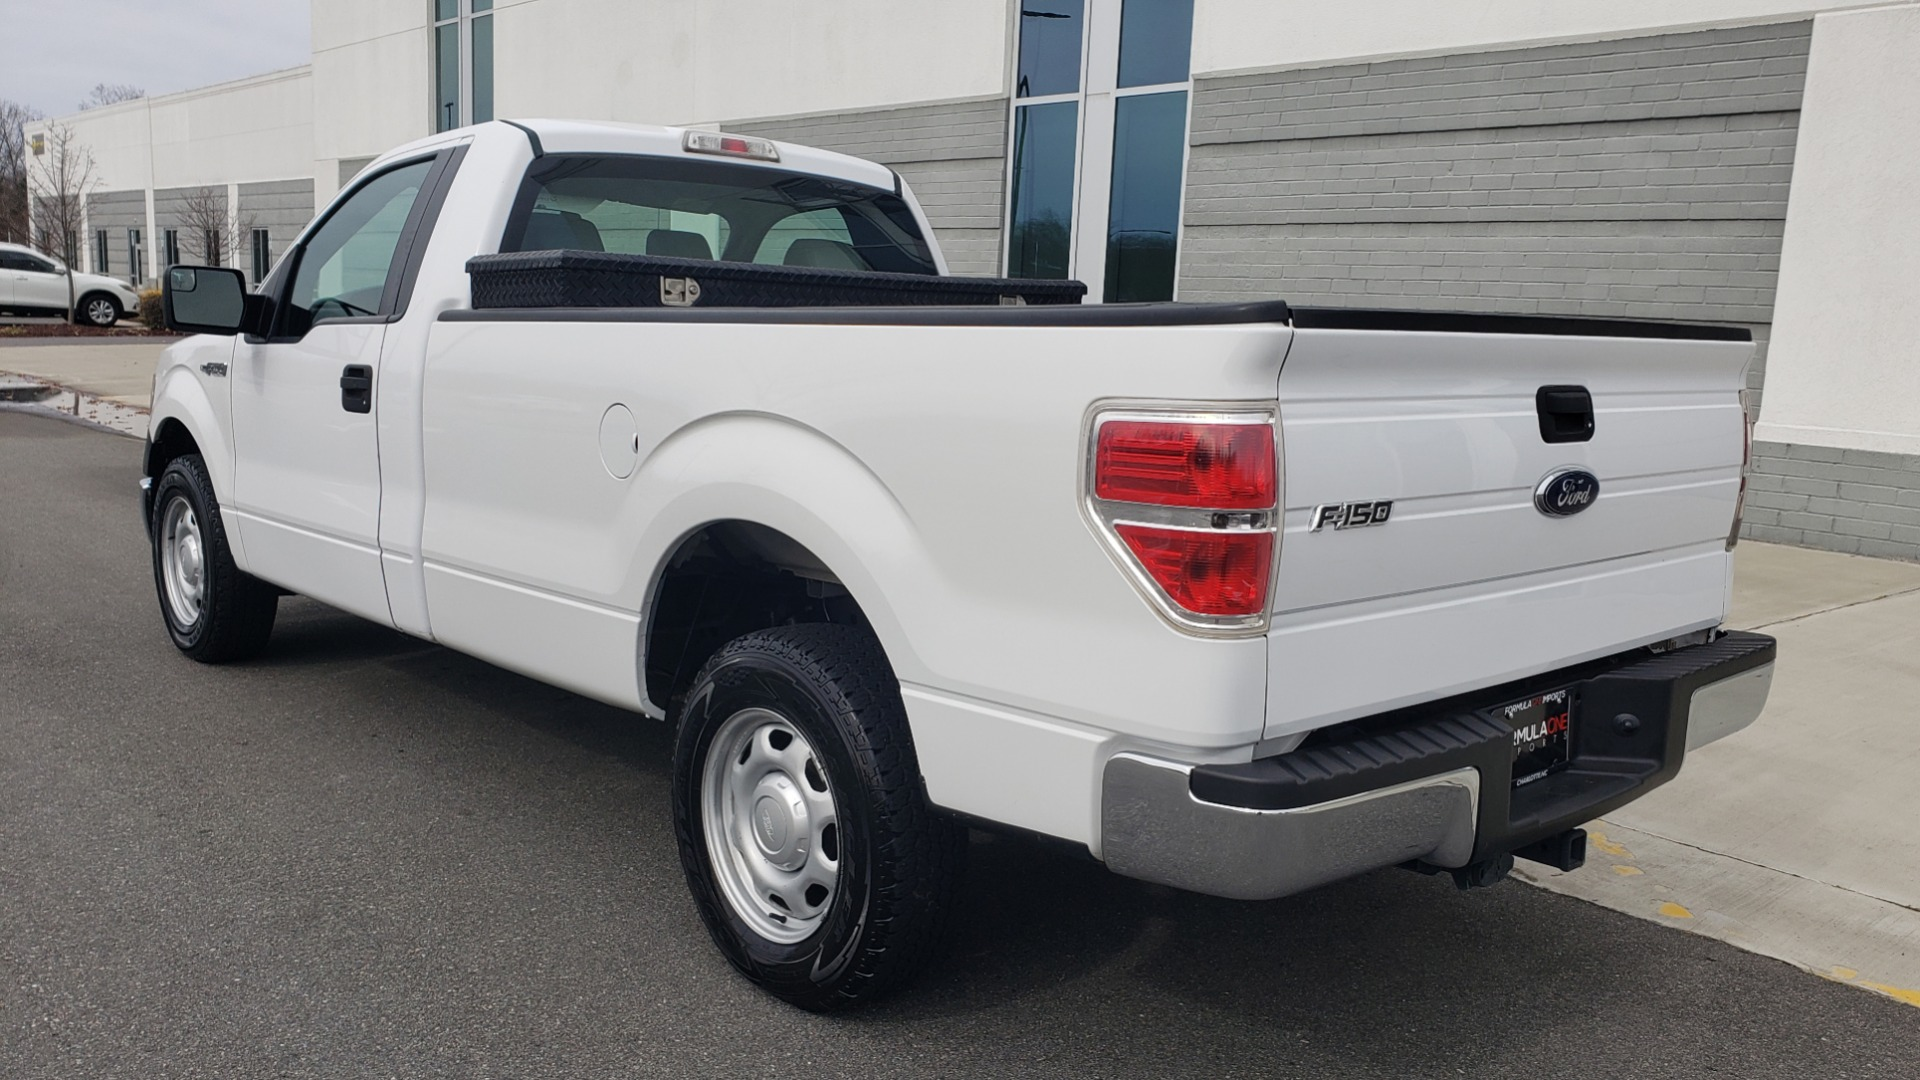 Used 2014 Ford F-150 XL 4X2 REGULAR CAB / 3.7L V6 / 6-SPD AUTO / CRUISE CONTROL for sale $11,995 at Formula Imports in Charlotte NC 28227 3